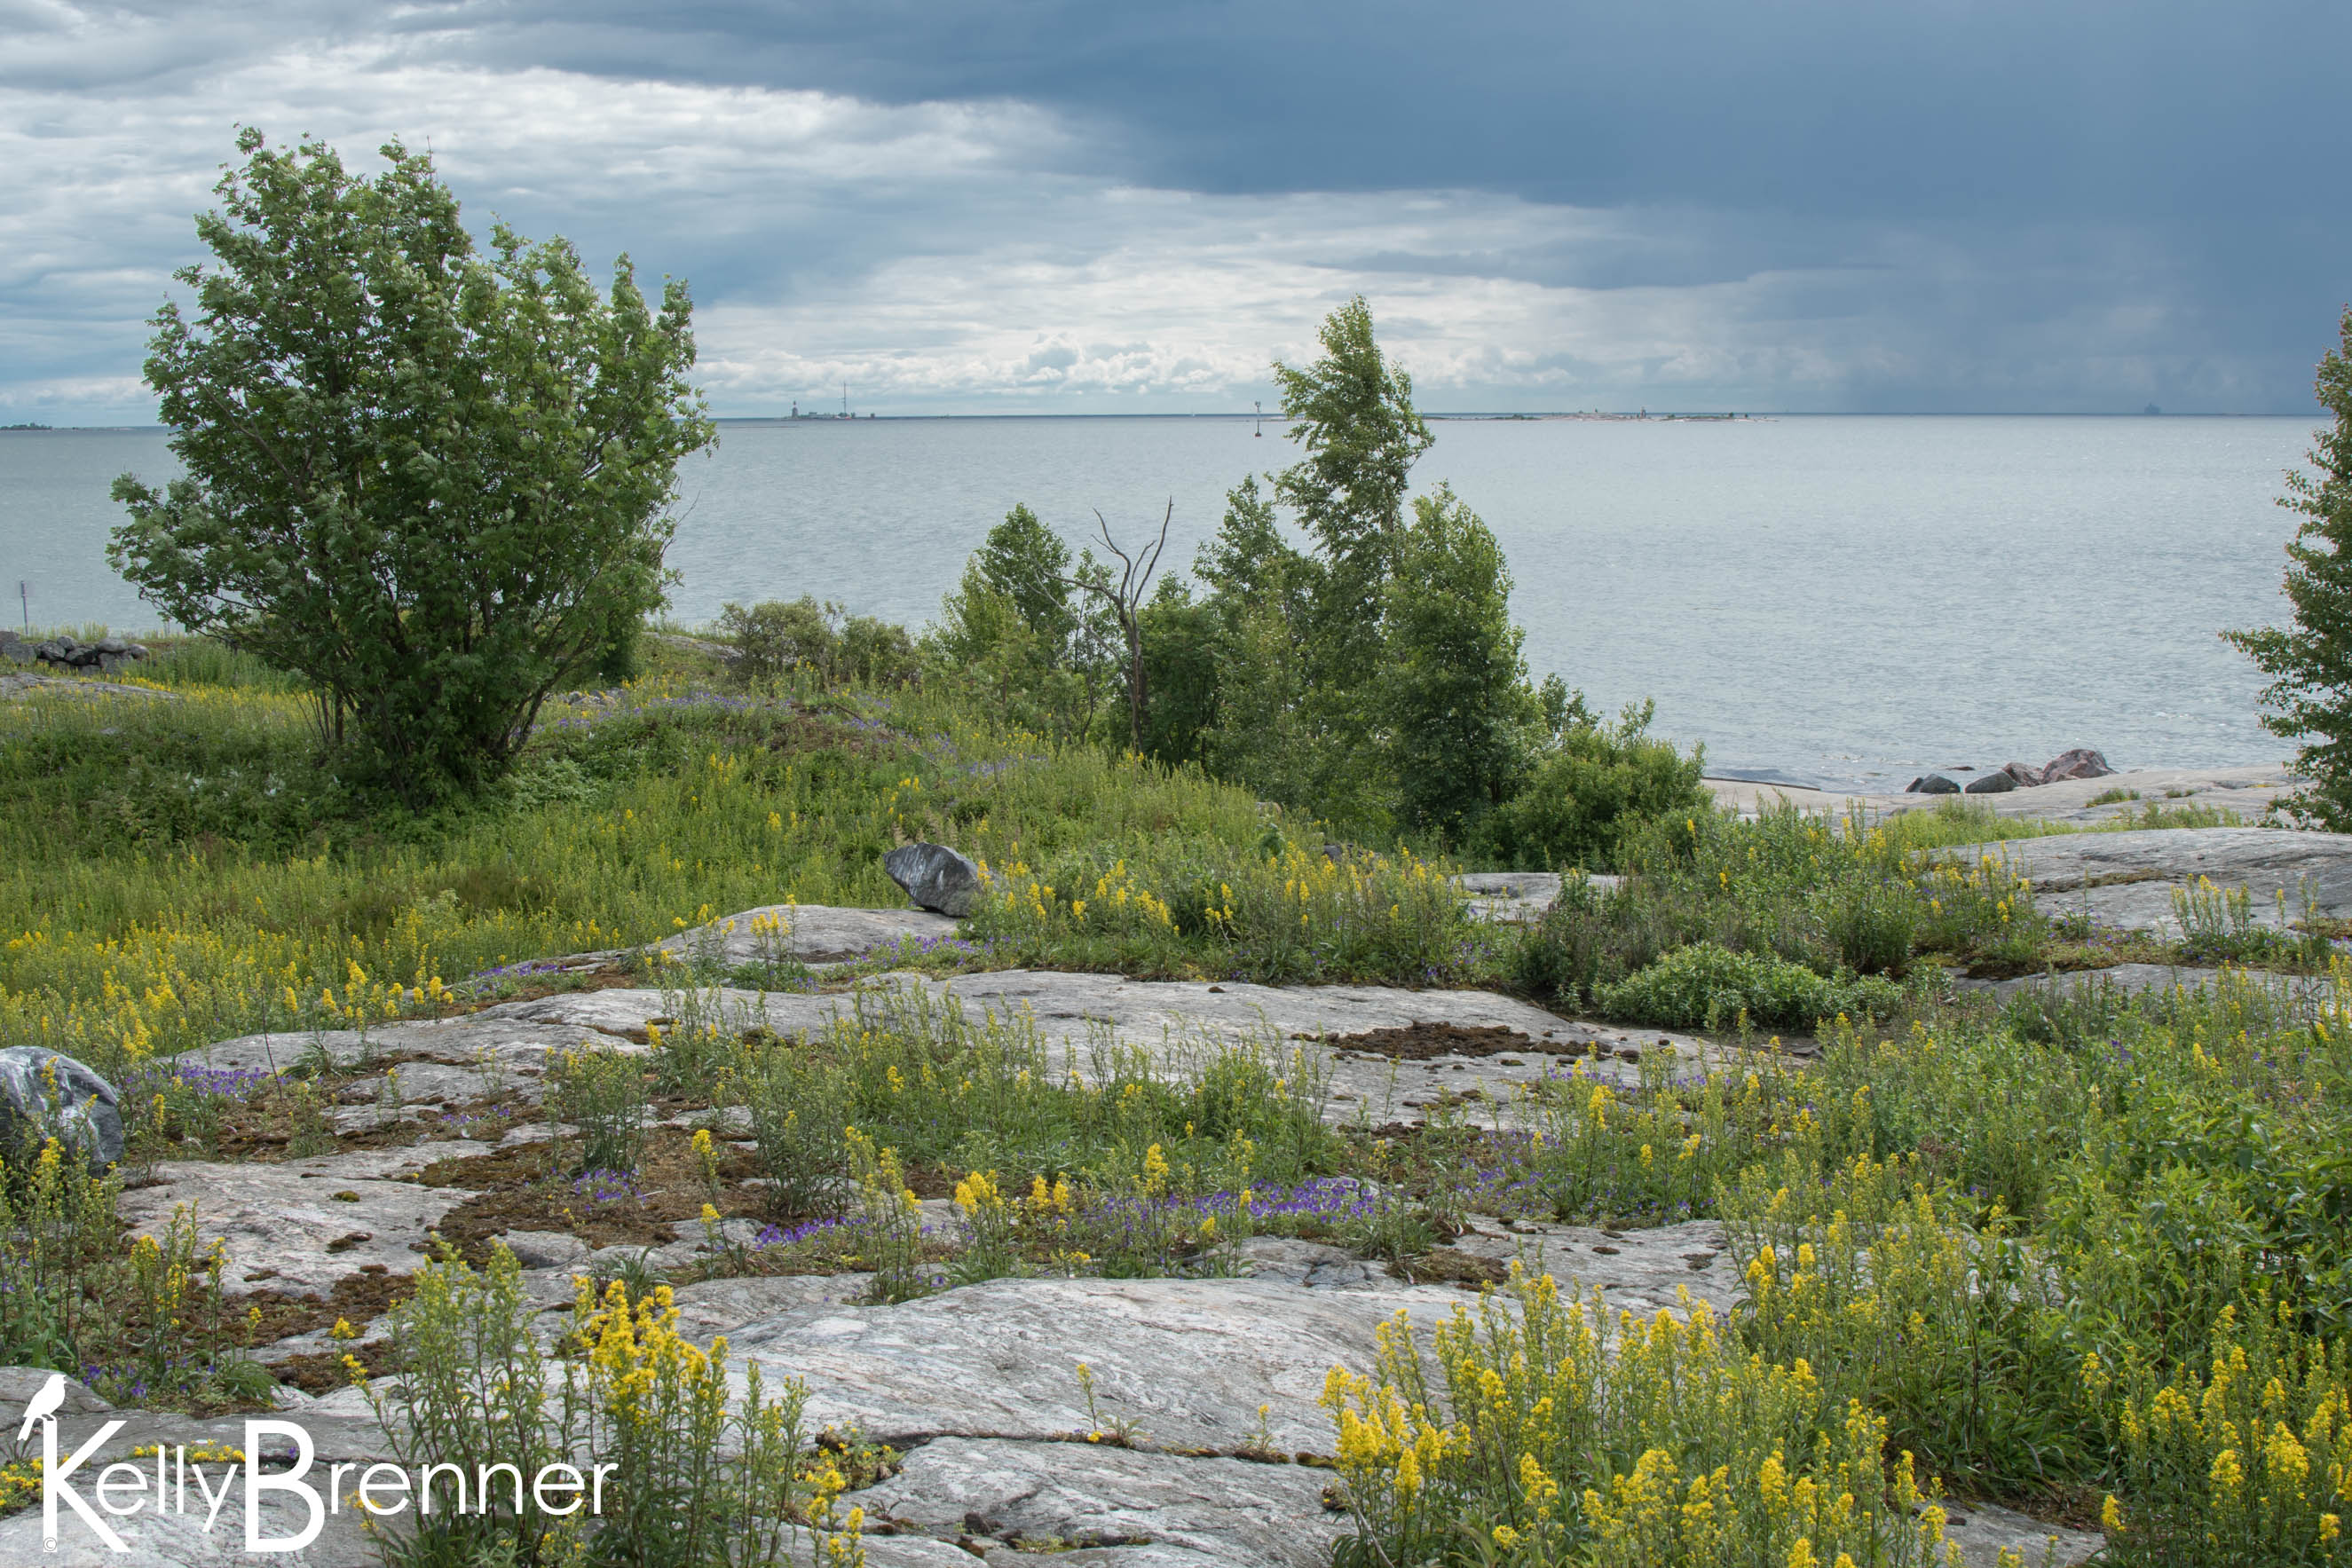 Field Journal: Harakka Island, Helsinki